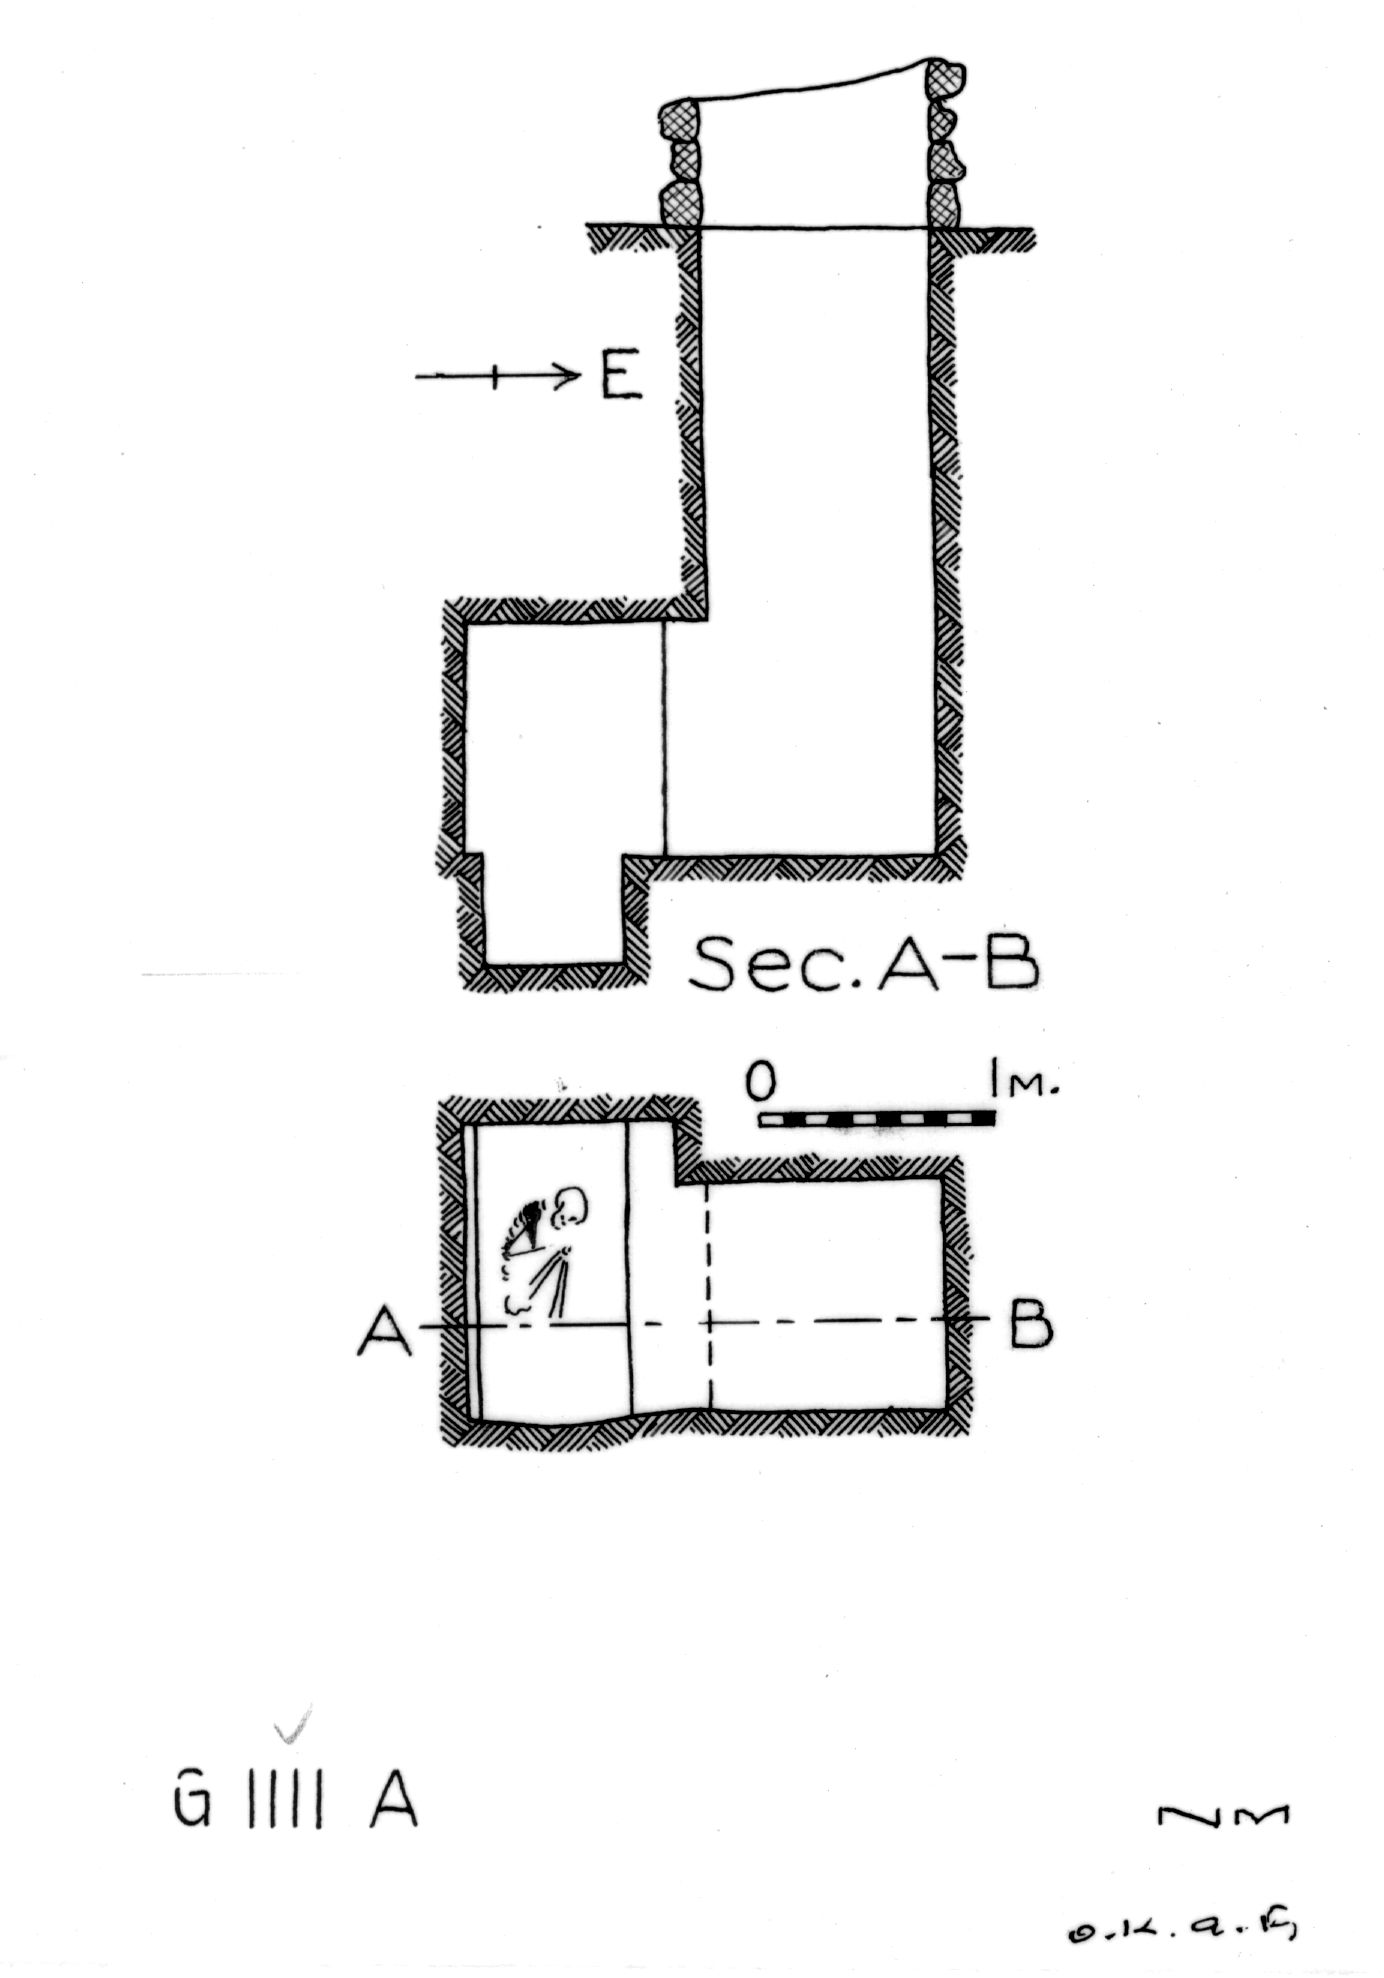 Maps and plans: G 1111, Shaft A